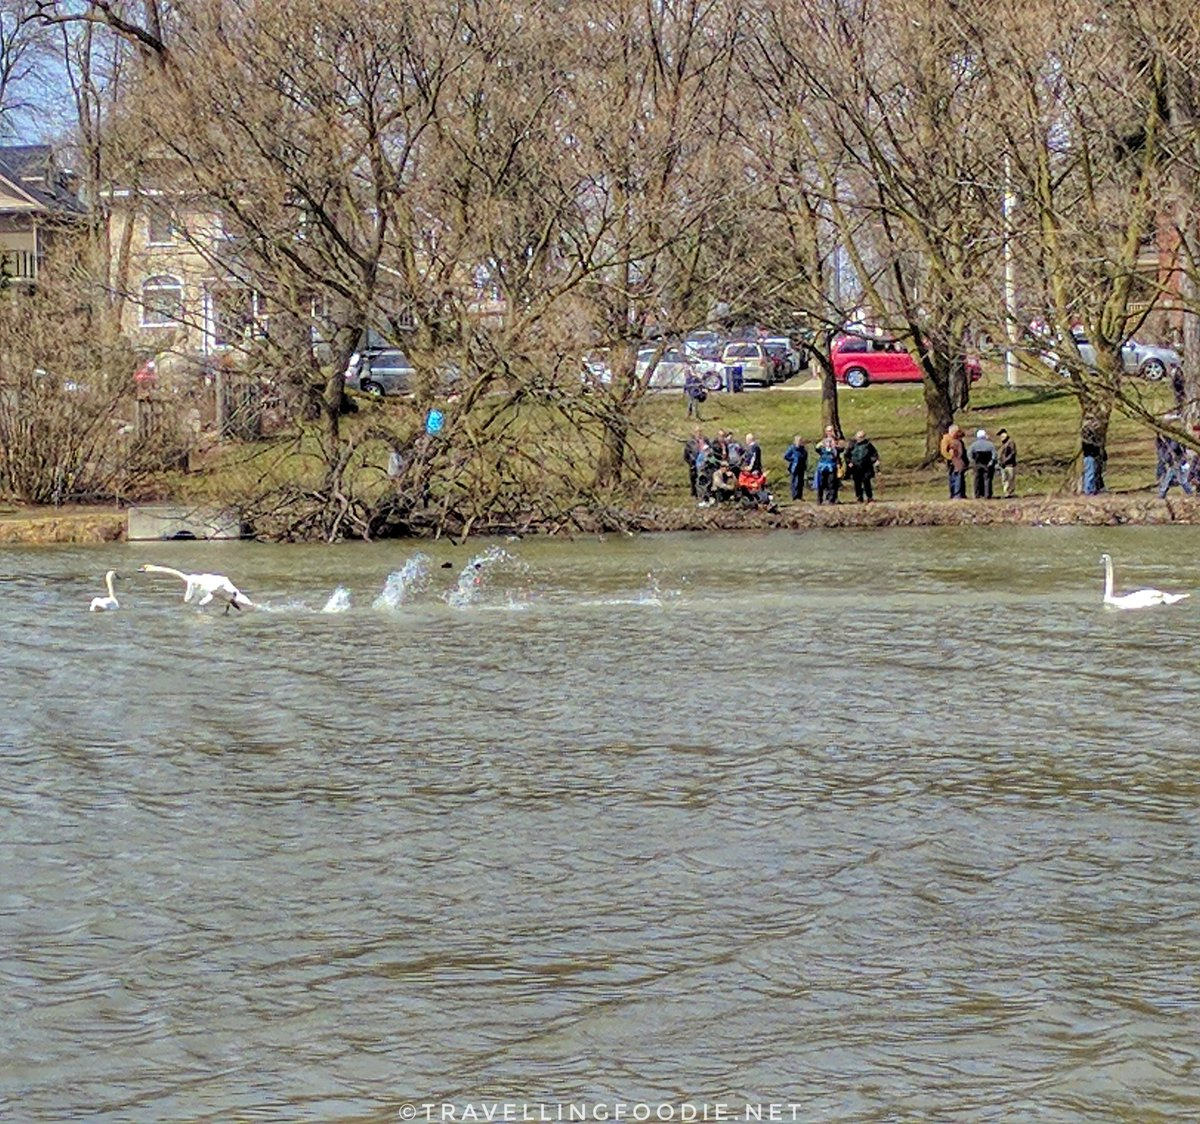 Stratford Swan Parade: Swans released to the Avon River